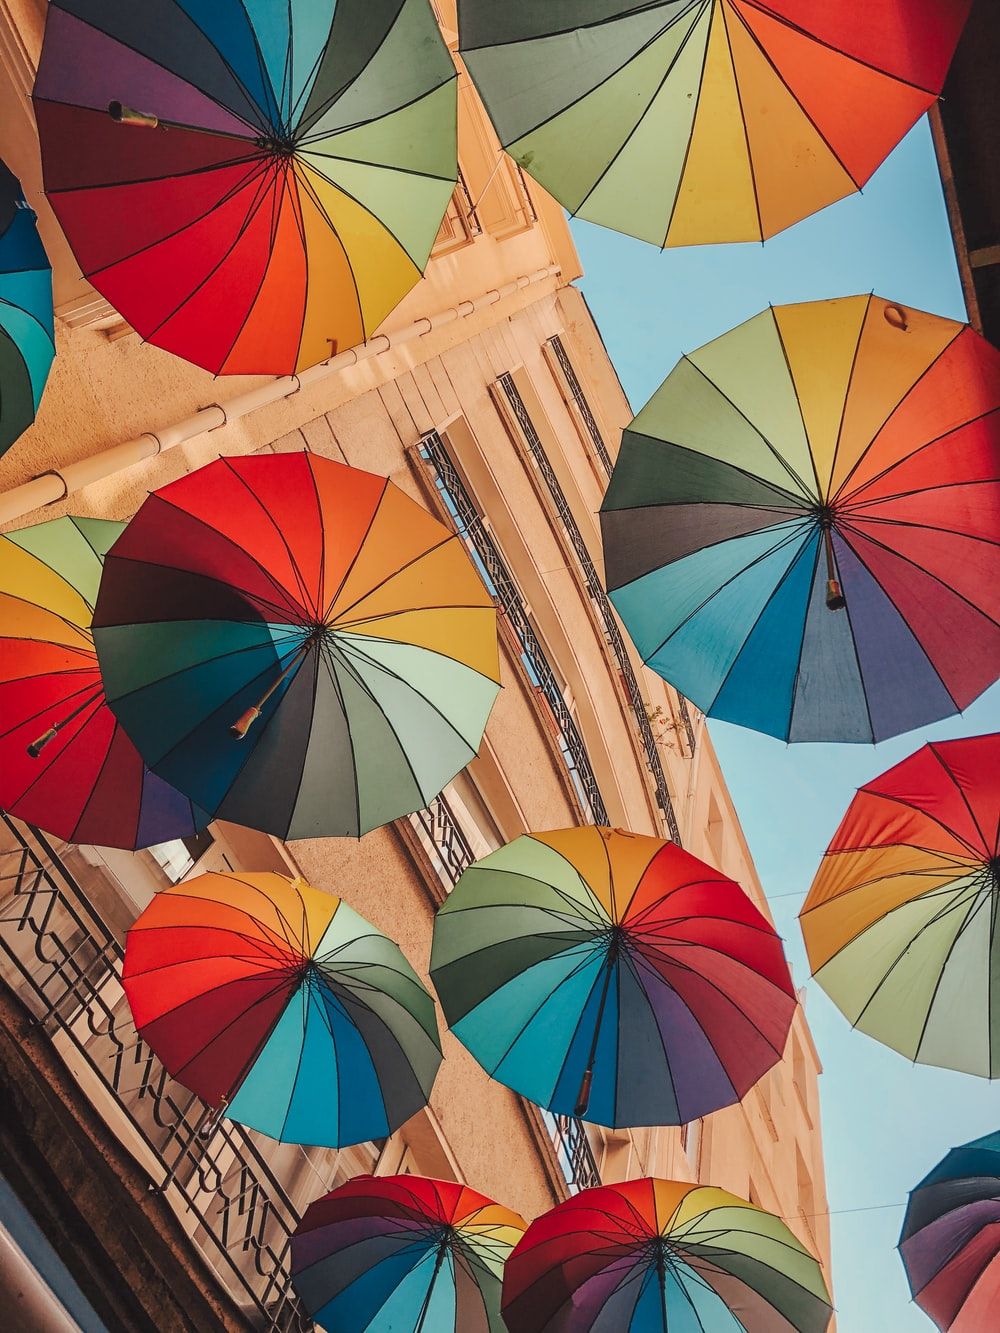 low angle photography of umbrella umbrellas under blue sky during daytime